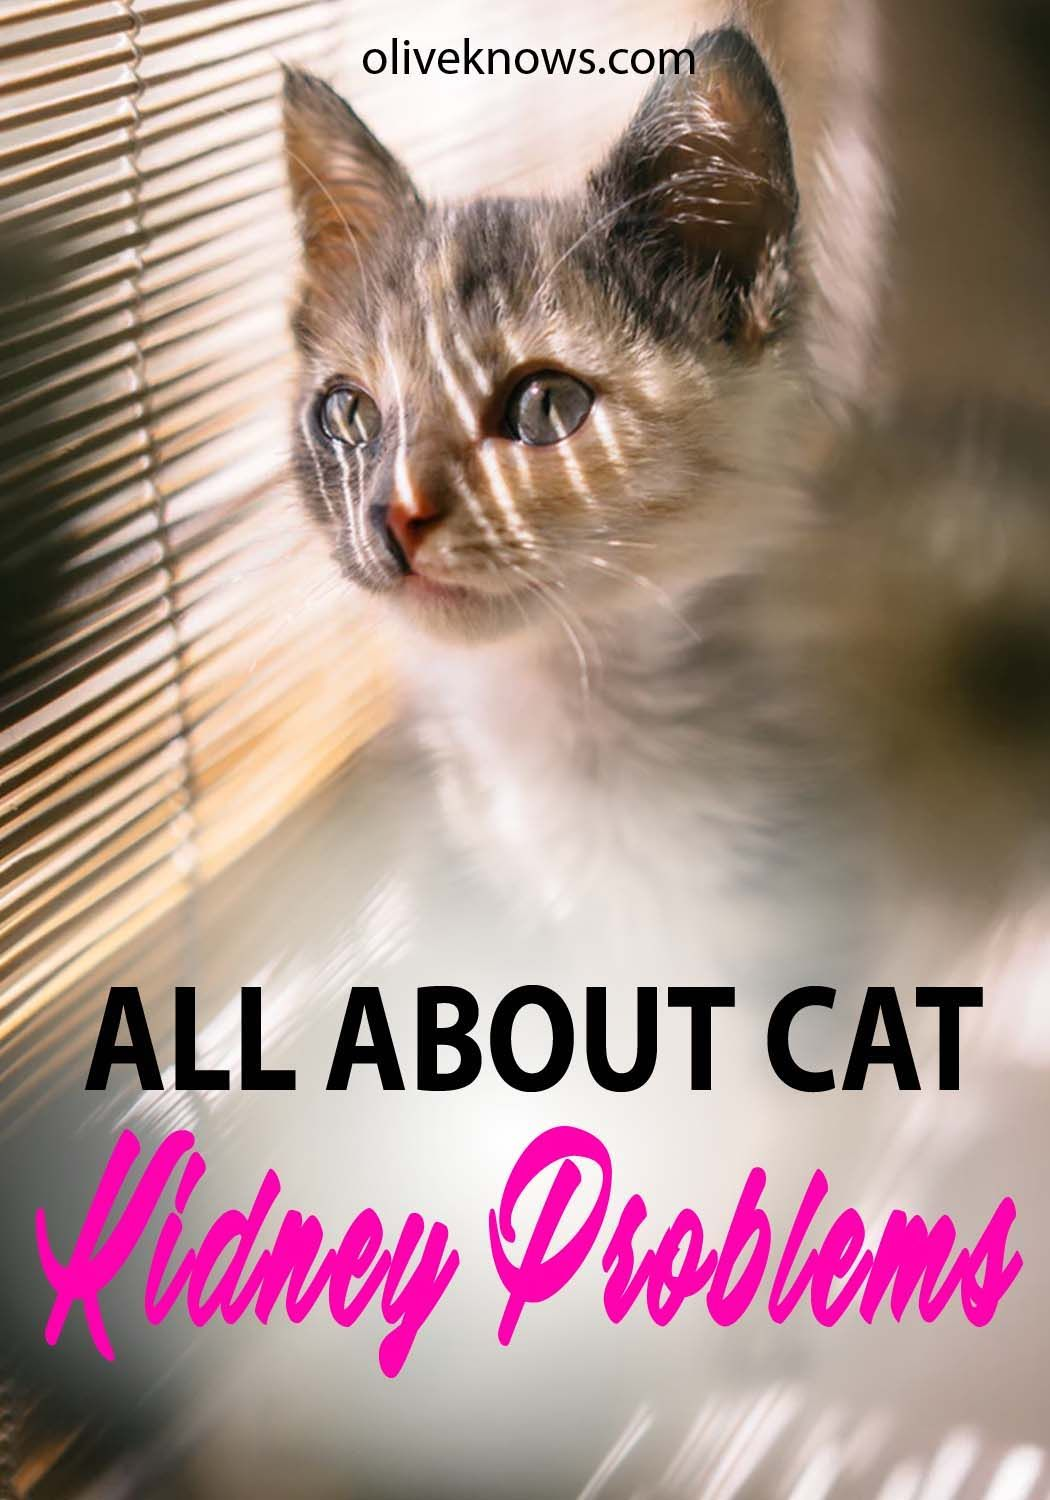 All About Cat Kidney Problems Cats, Cat kidney, Cat health